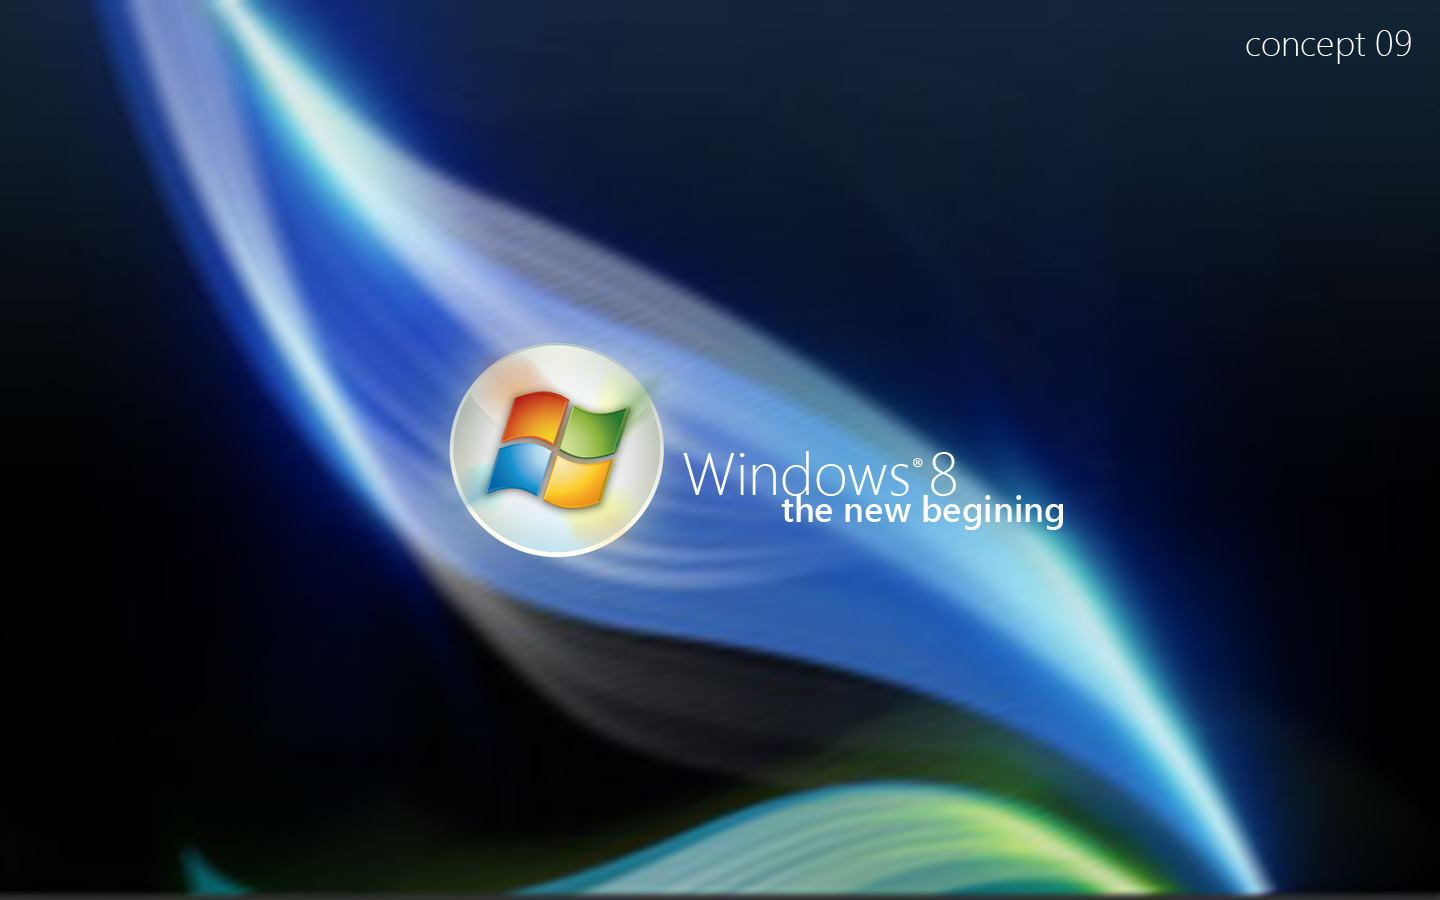 Windows 8 picture